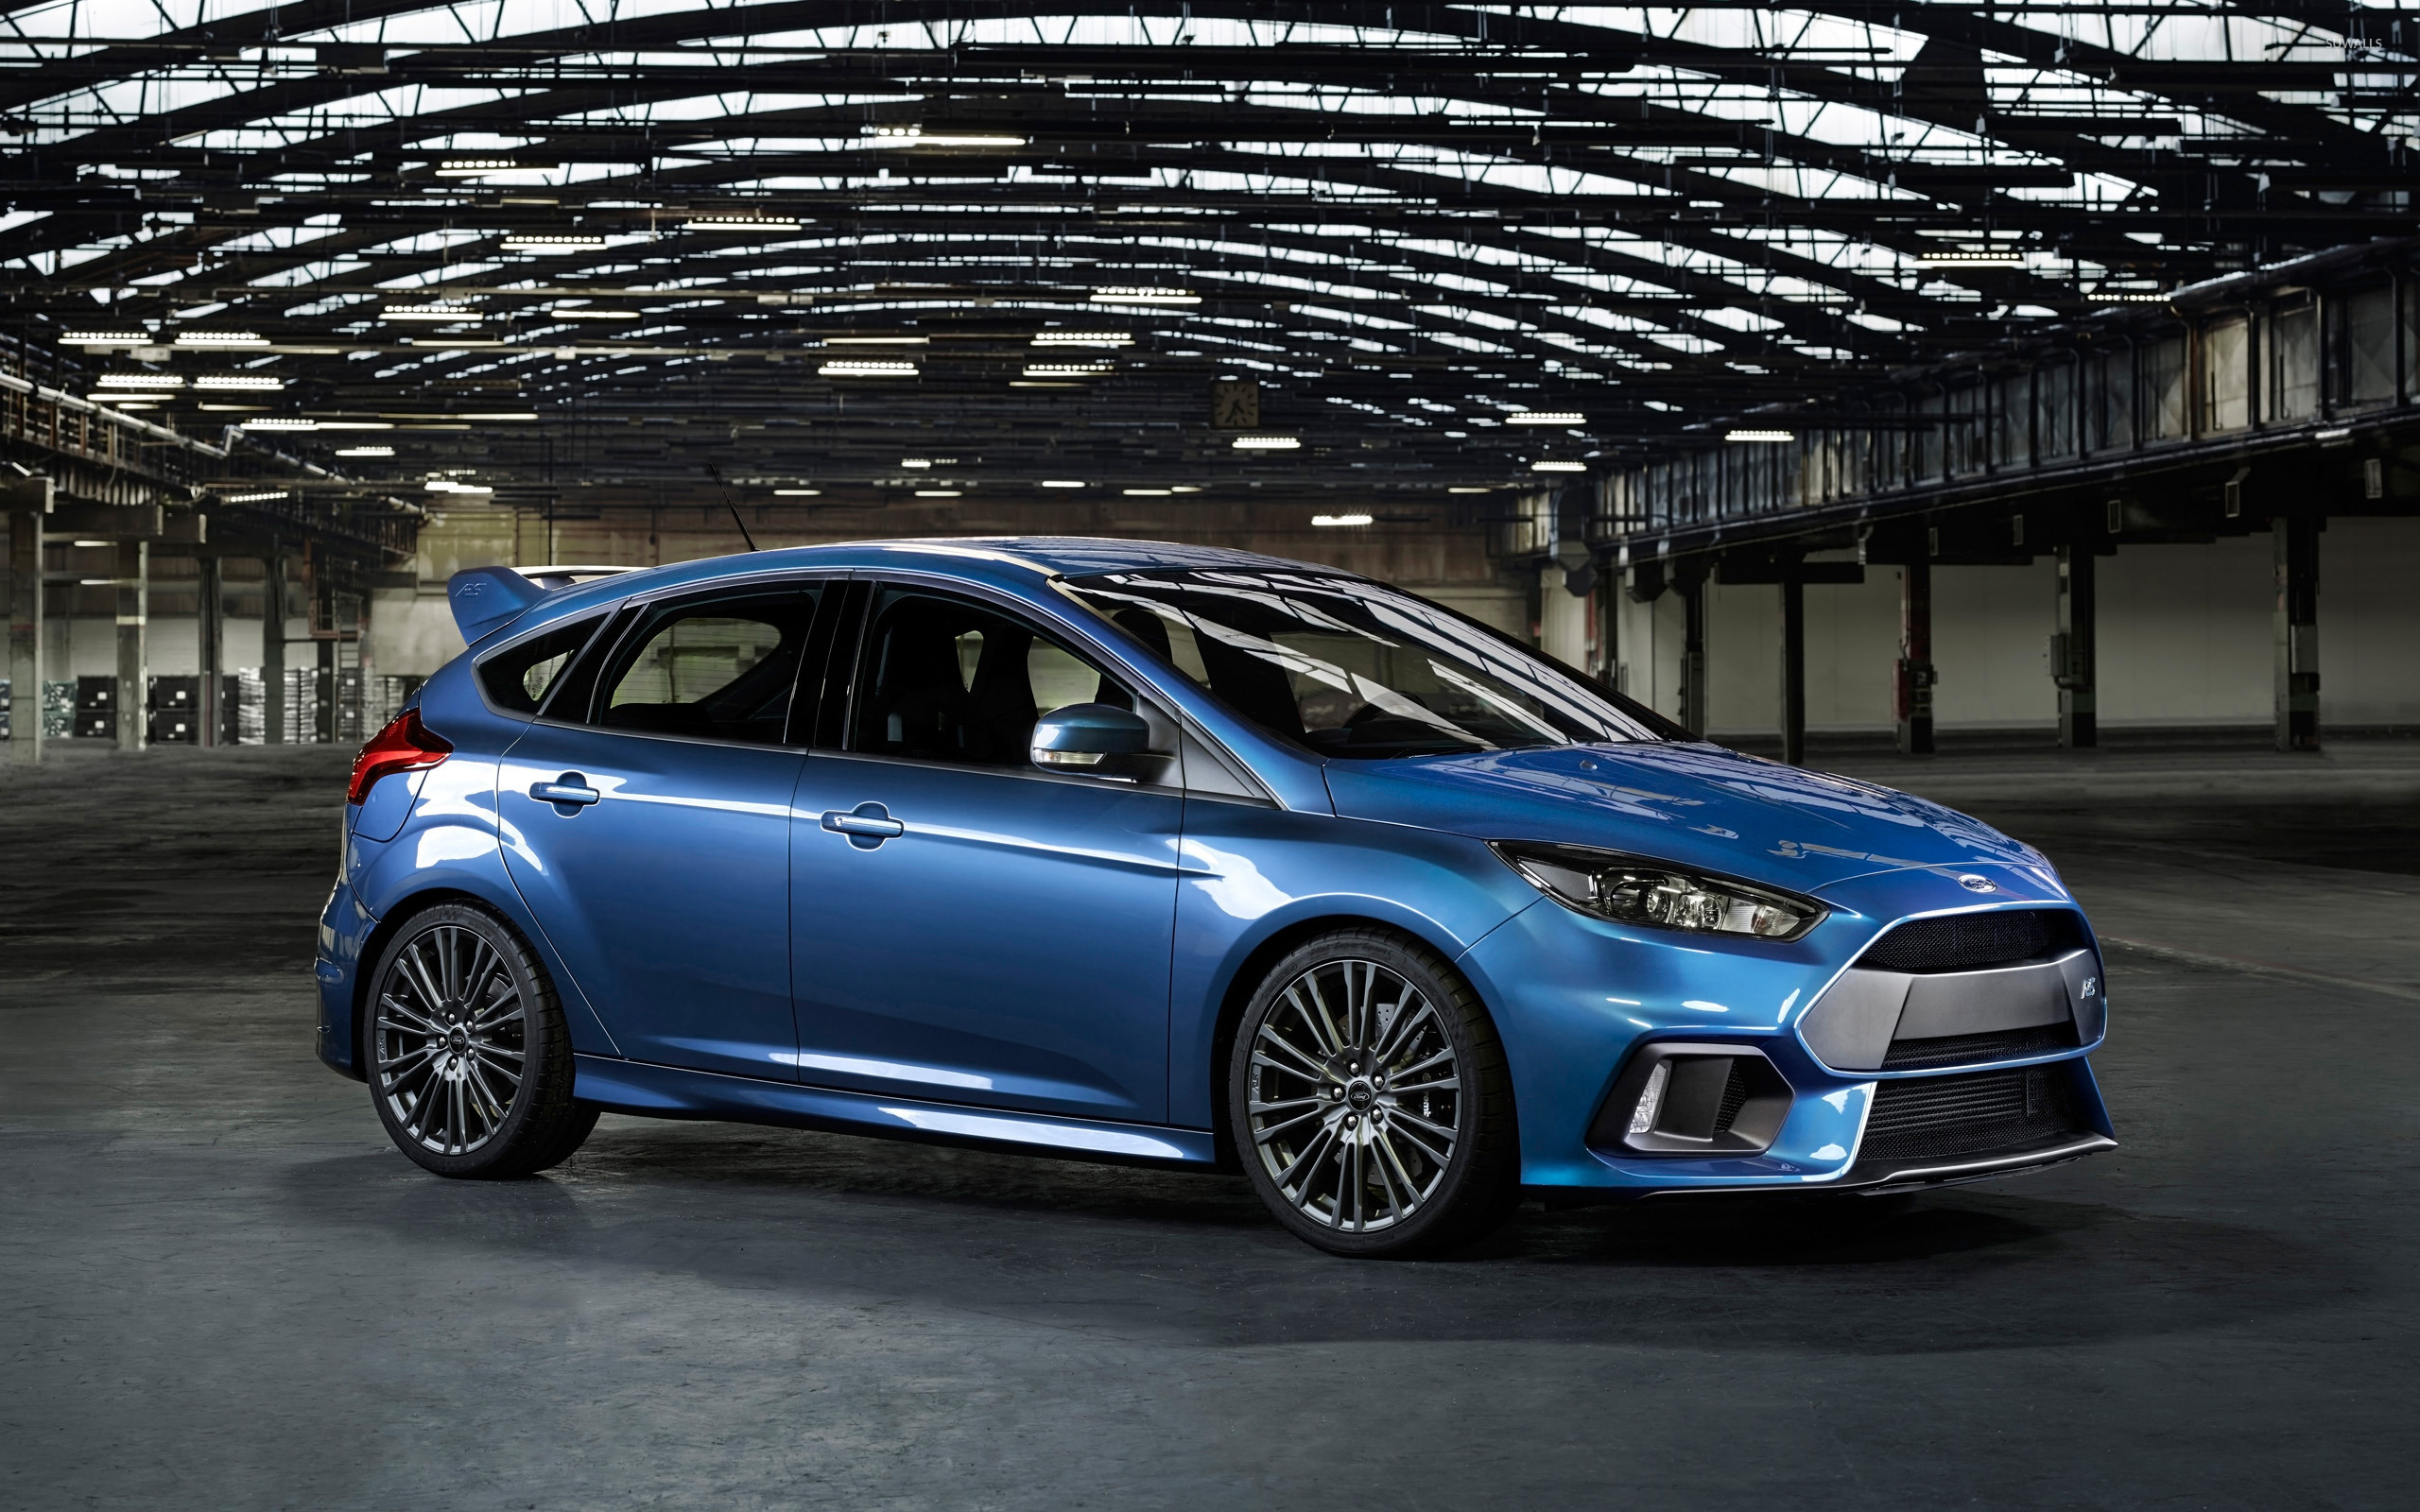 2015 Blue Ford Focus Rs In A Warehouse Wallpaper Car